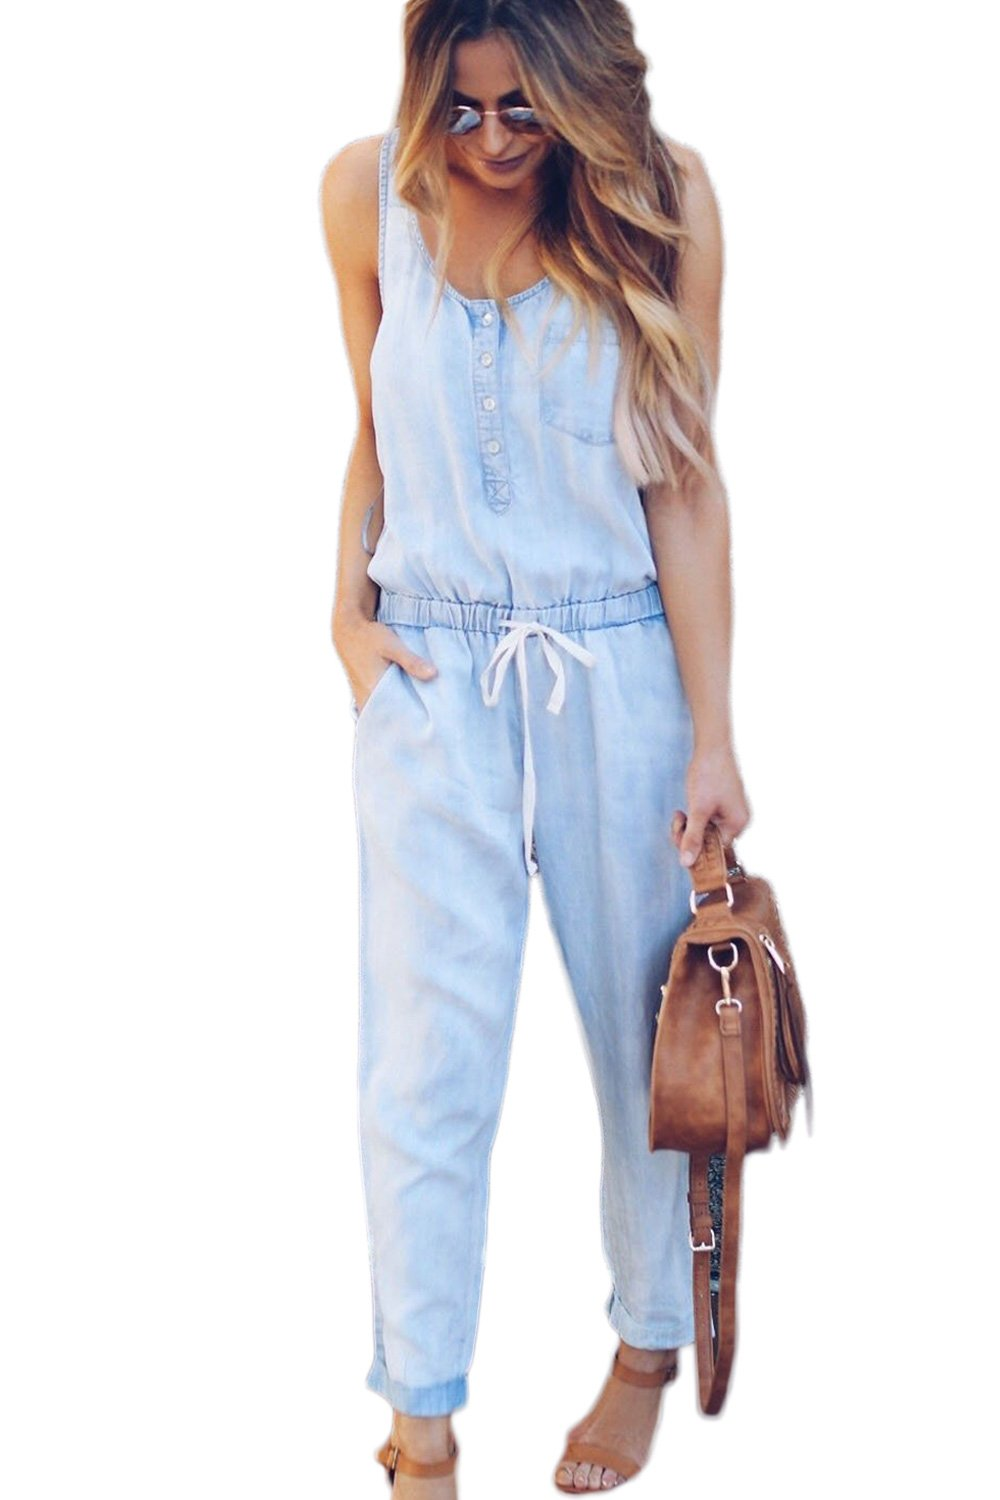 Sevozimda Womens Jean Jumpsuit Rompers Sleeveless Drawstring Cargo Pants Jumpsuits CAQZ3098